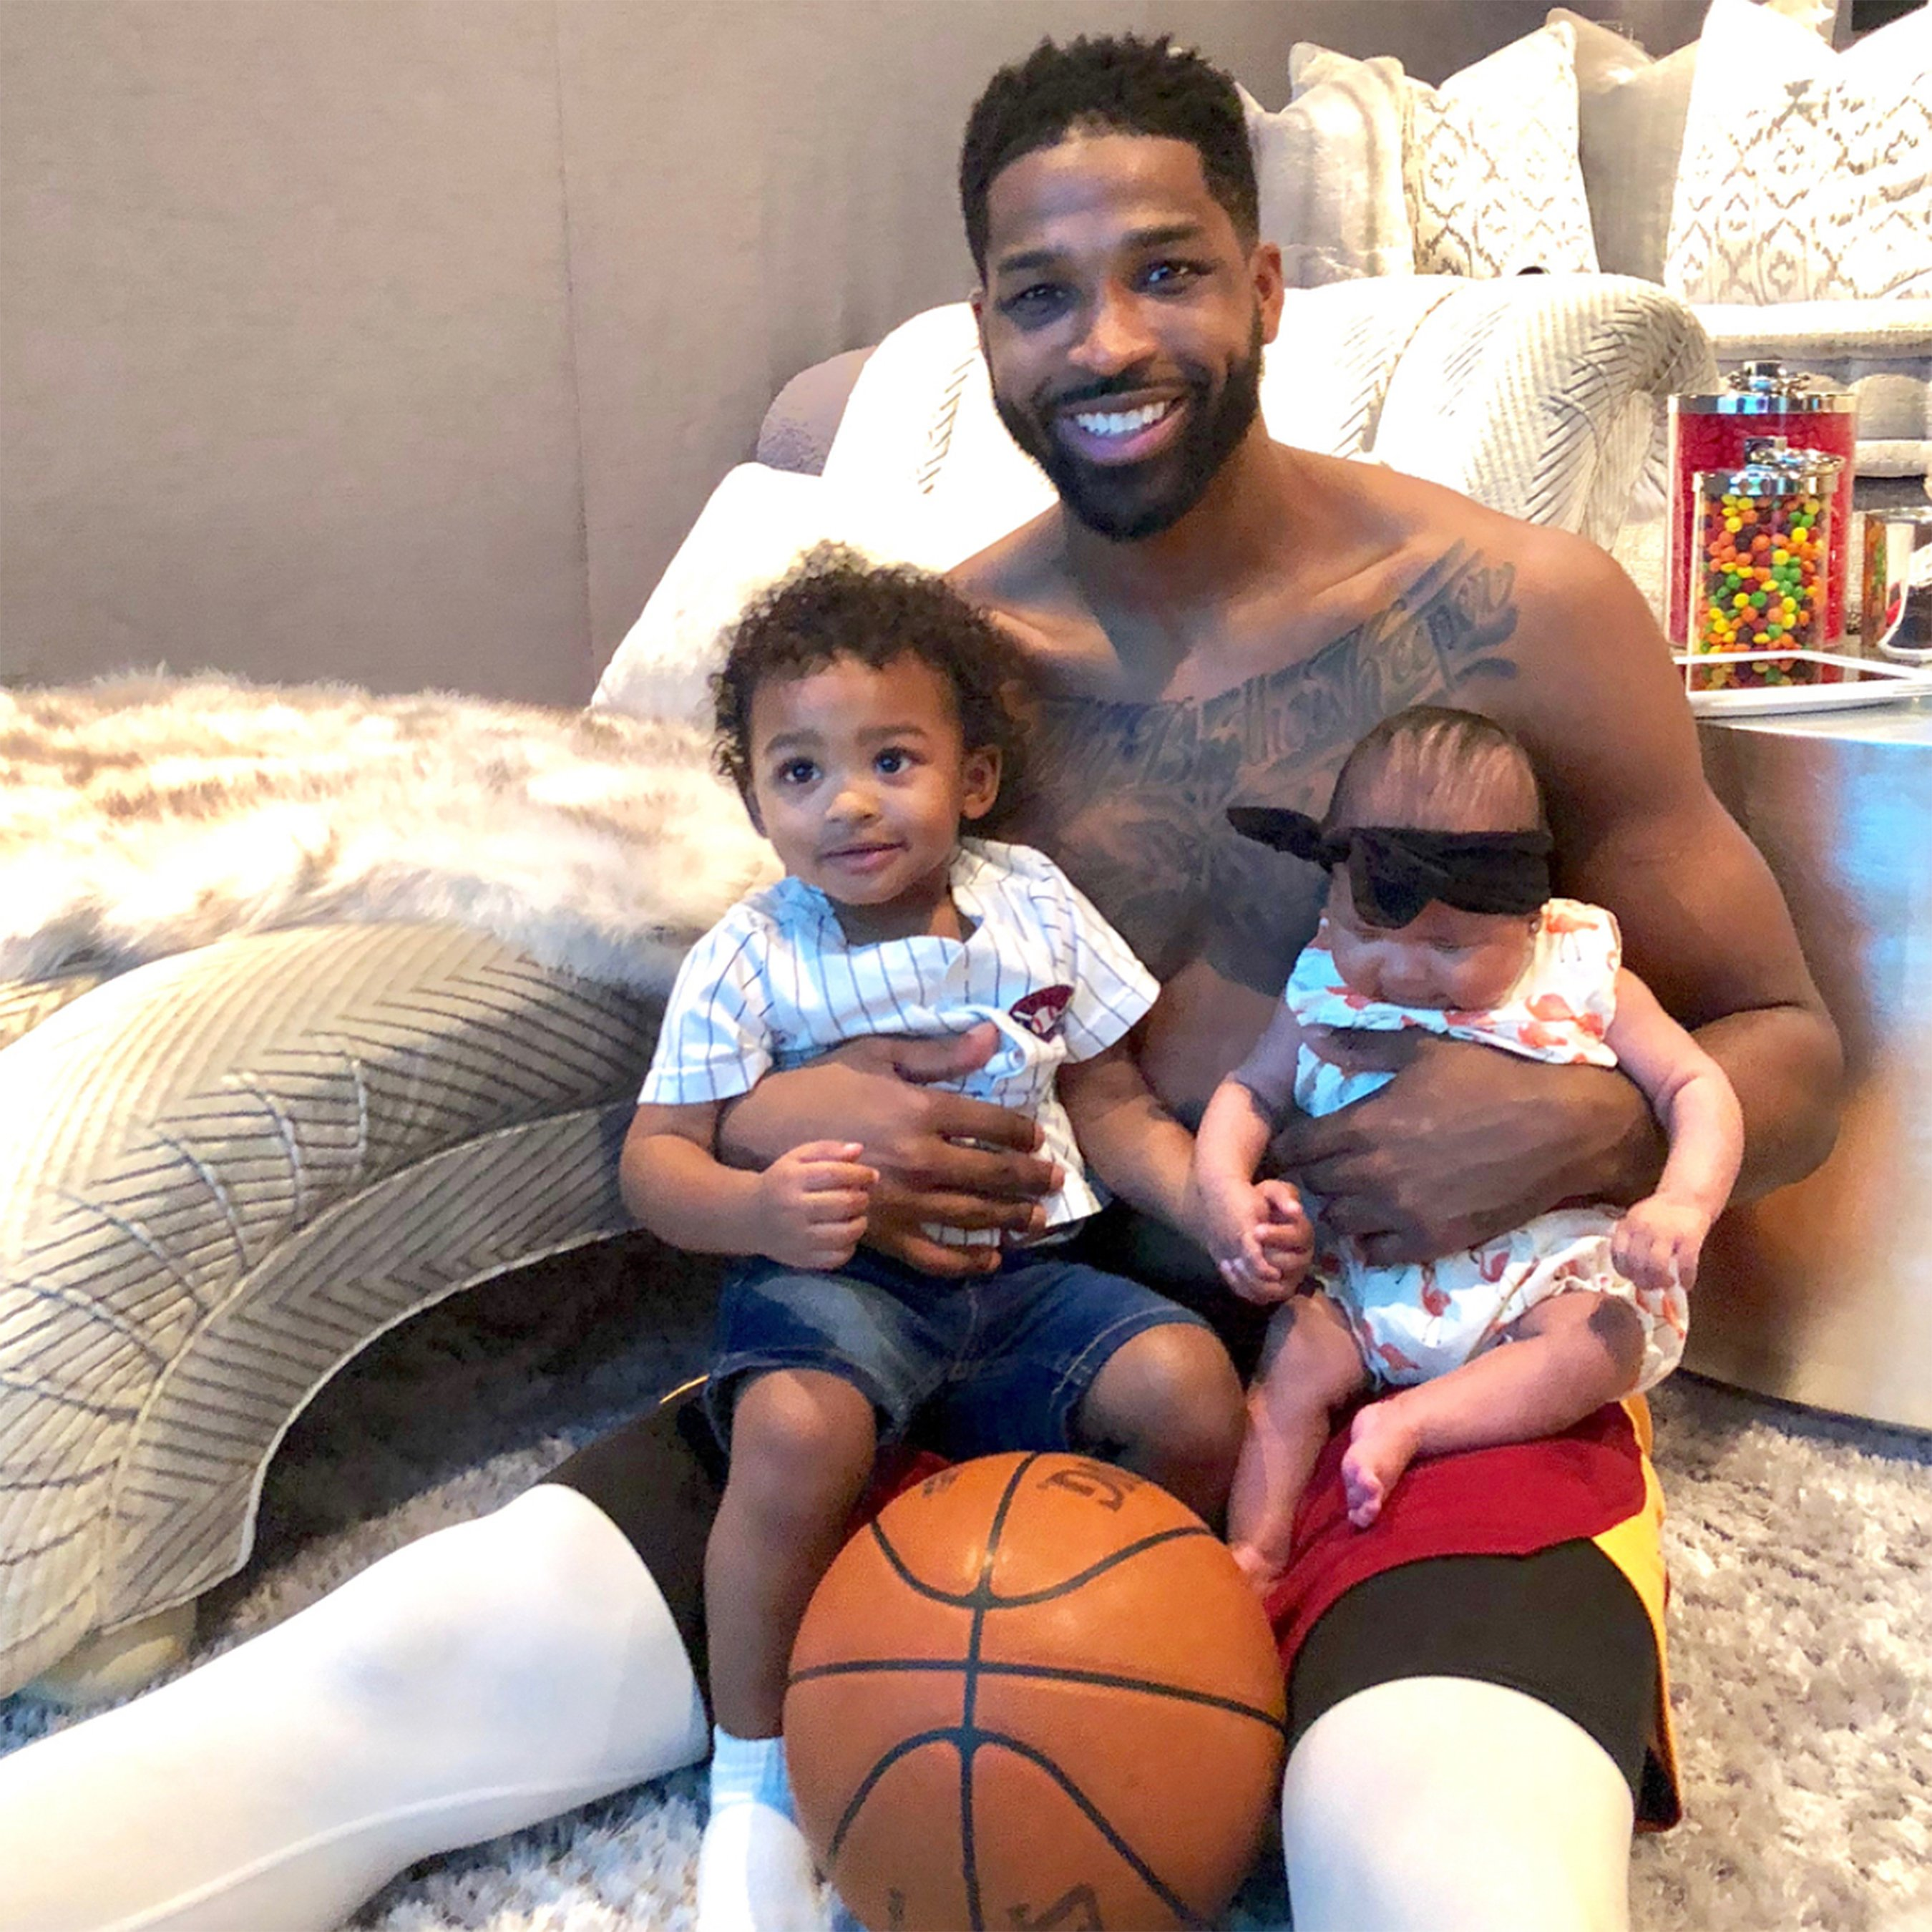 Khloé Kardashian's BF Tristan Thompson Jokes Christmas Will Be 'More Expensive' with 2 Kids